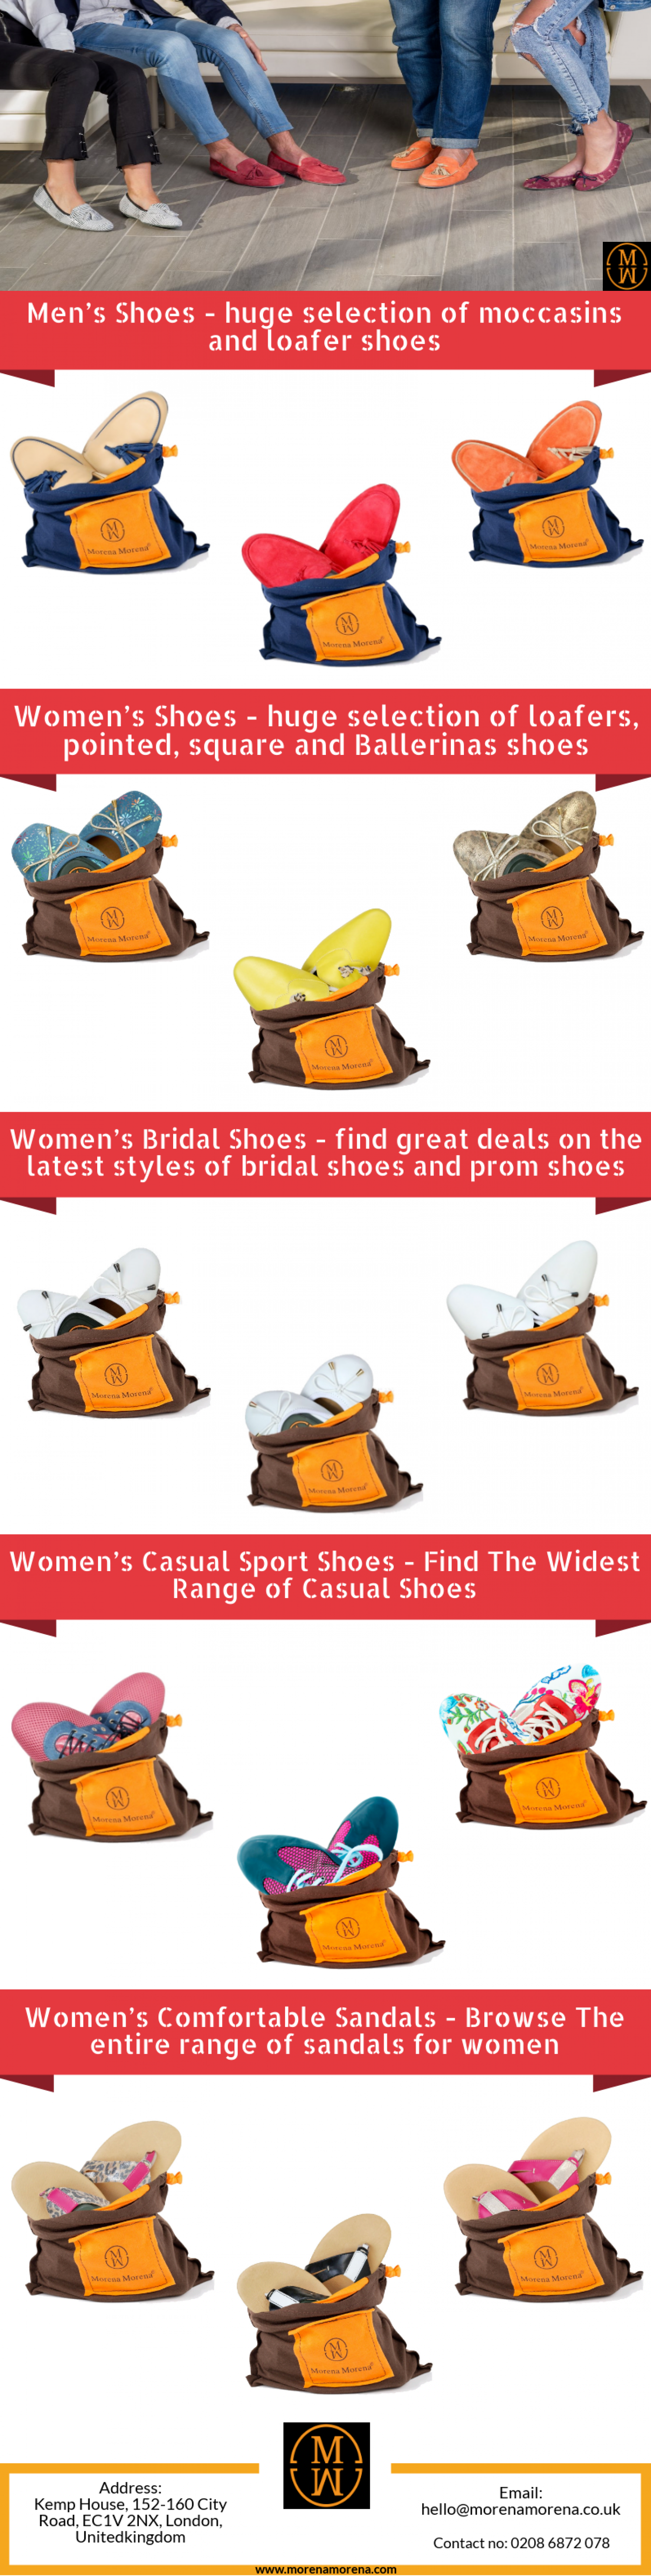 London Based Online Shoes Store For Men, Women & Kids - Morena Morena Shoes Infographic